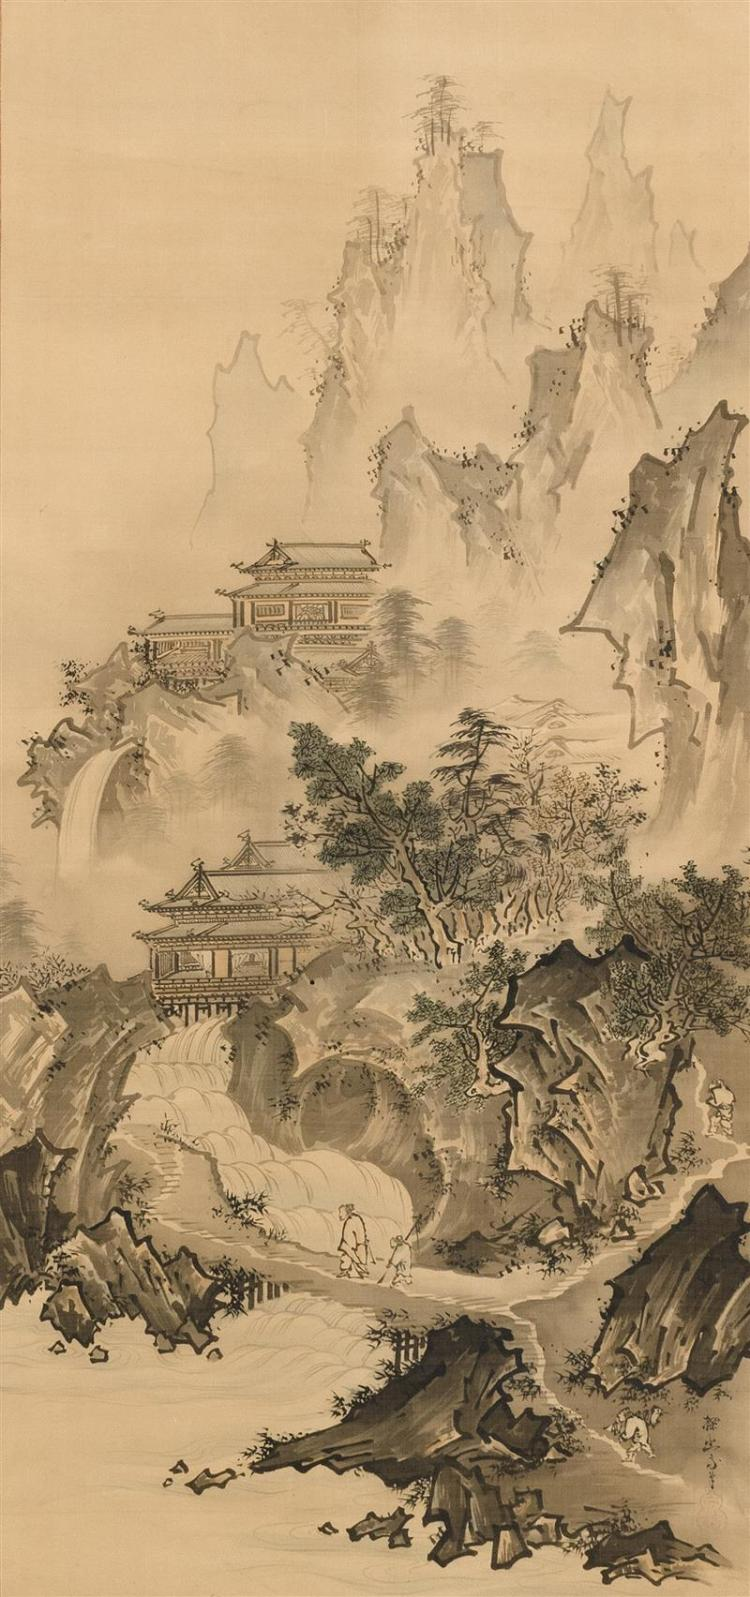 SCROLL PAINTING ON SILK Attributed to Tani Buncho. Depicting a traveler crossing a bridge with towering mountains and pavilions. Sig...